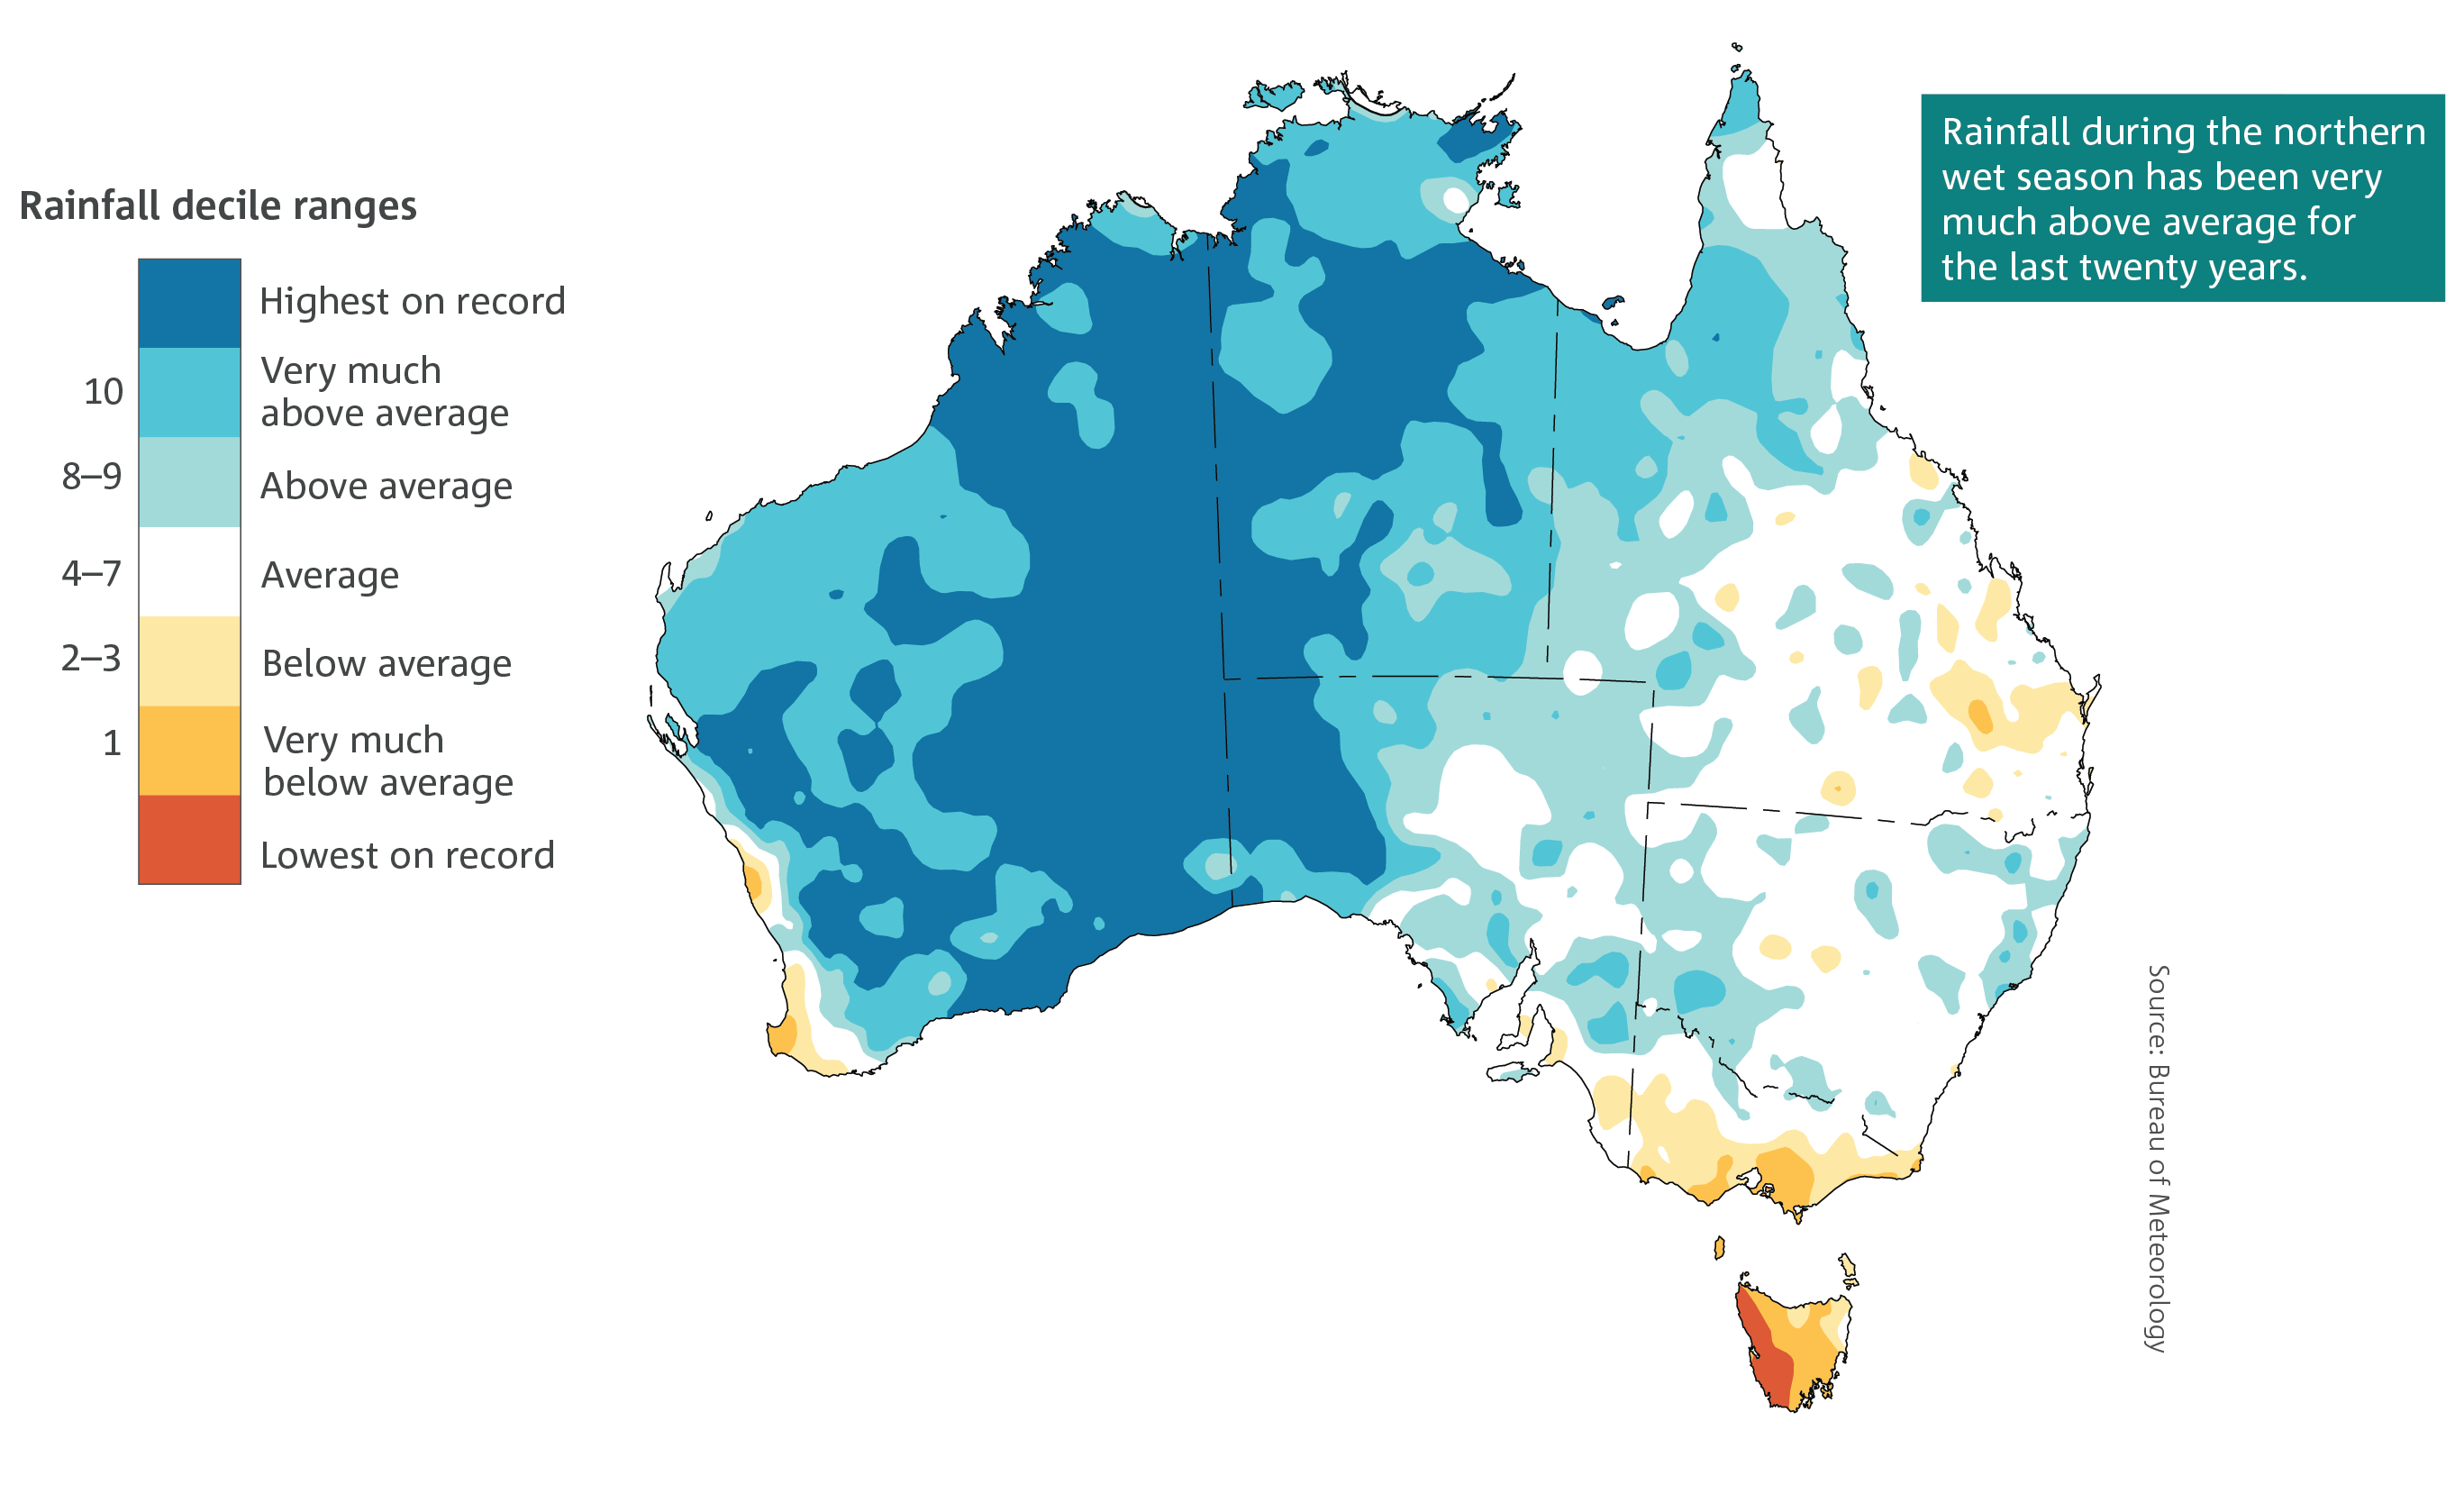 A decile map of the northern wet season (October–April) rainfall deciles for the last 20 years.